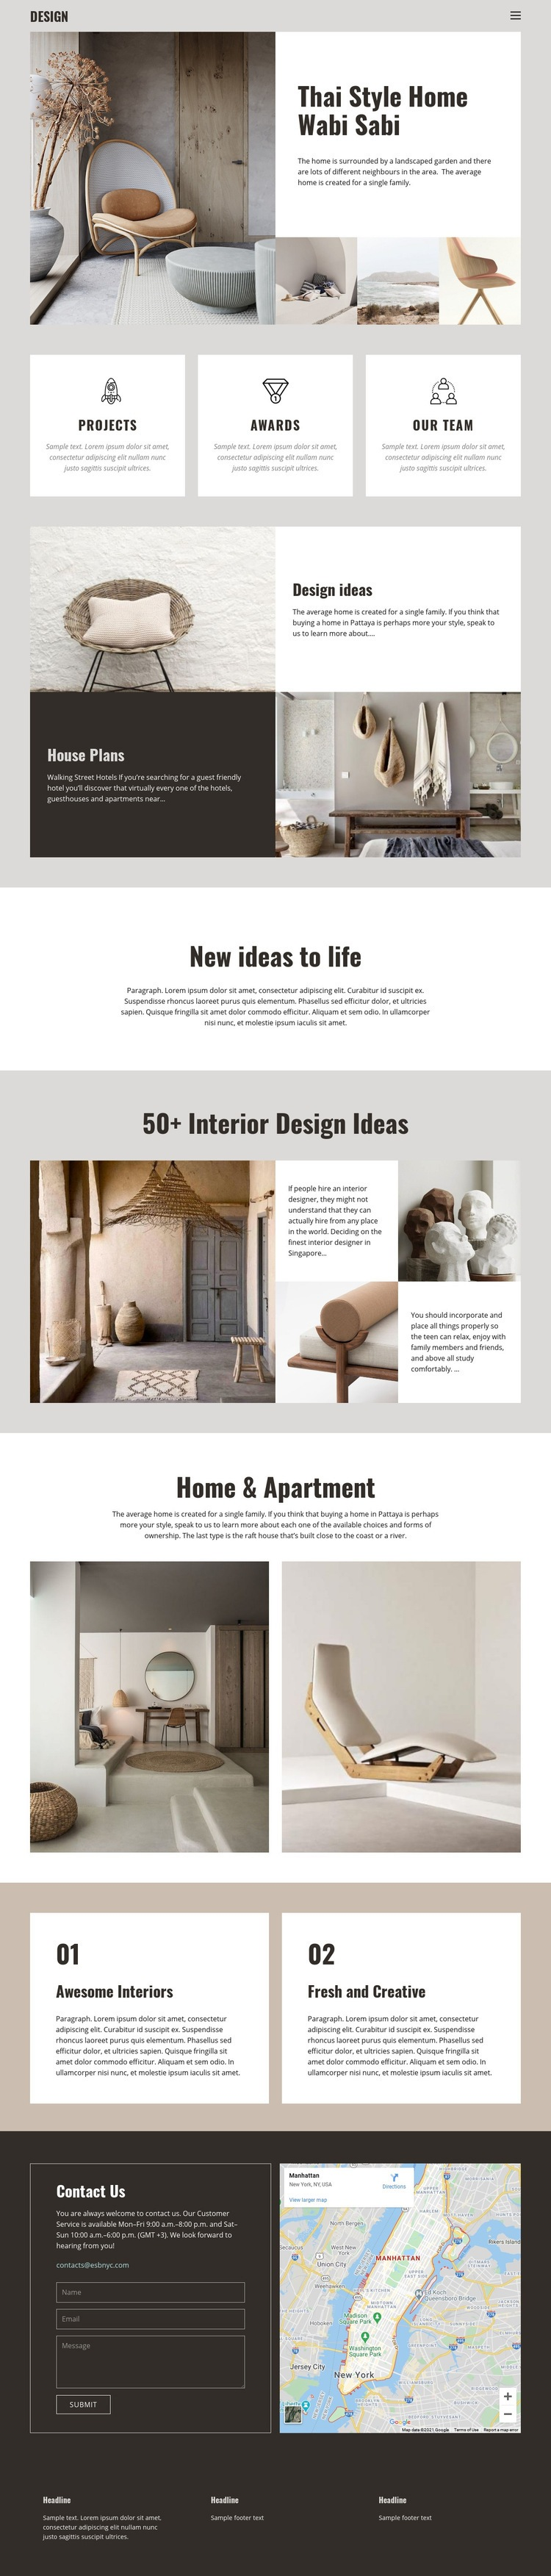 Thai style for home design Html Code Example